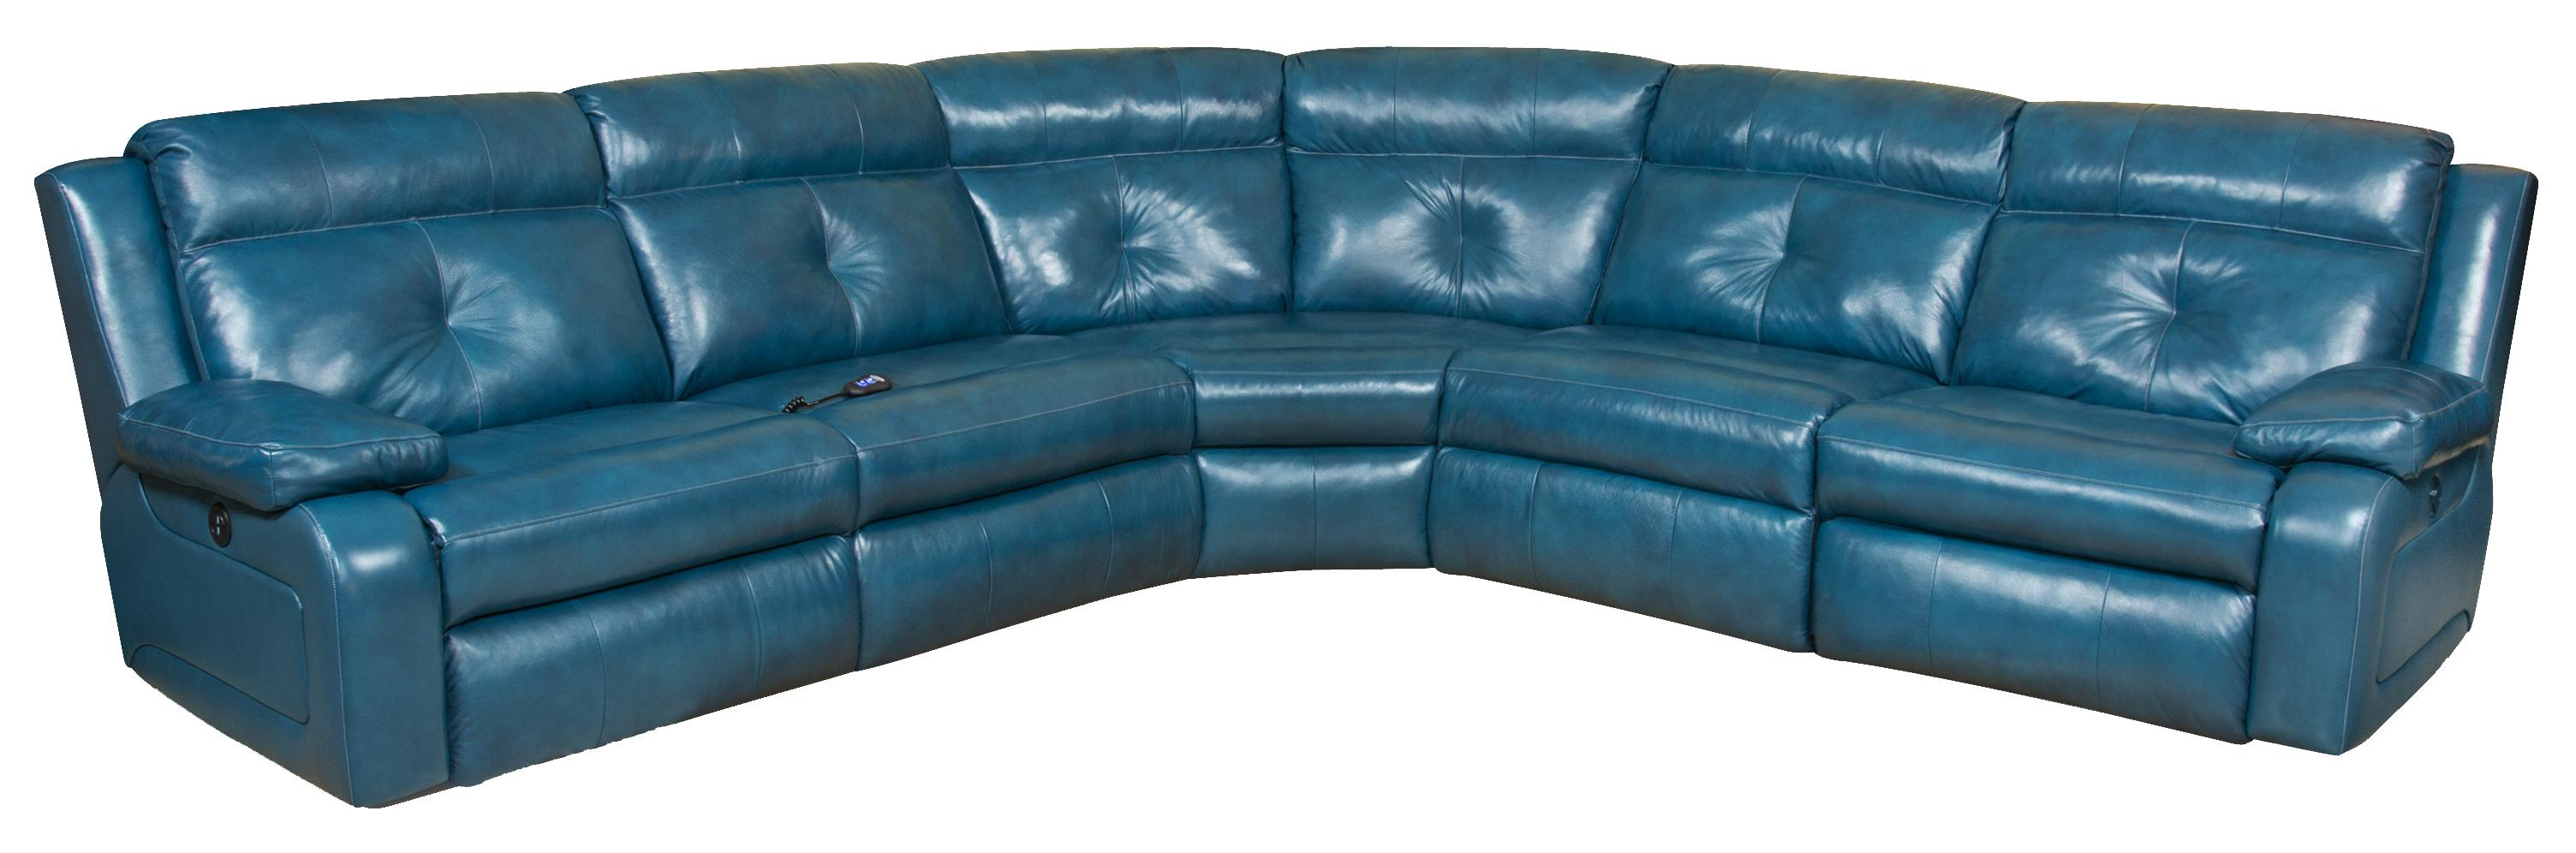 Southern Motion Dash Reclining Sectional Sofa Wayside